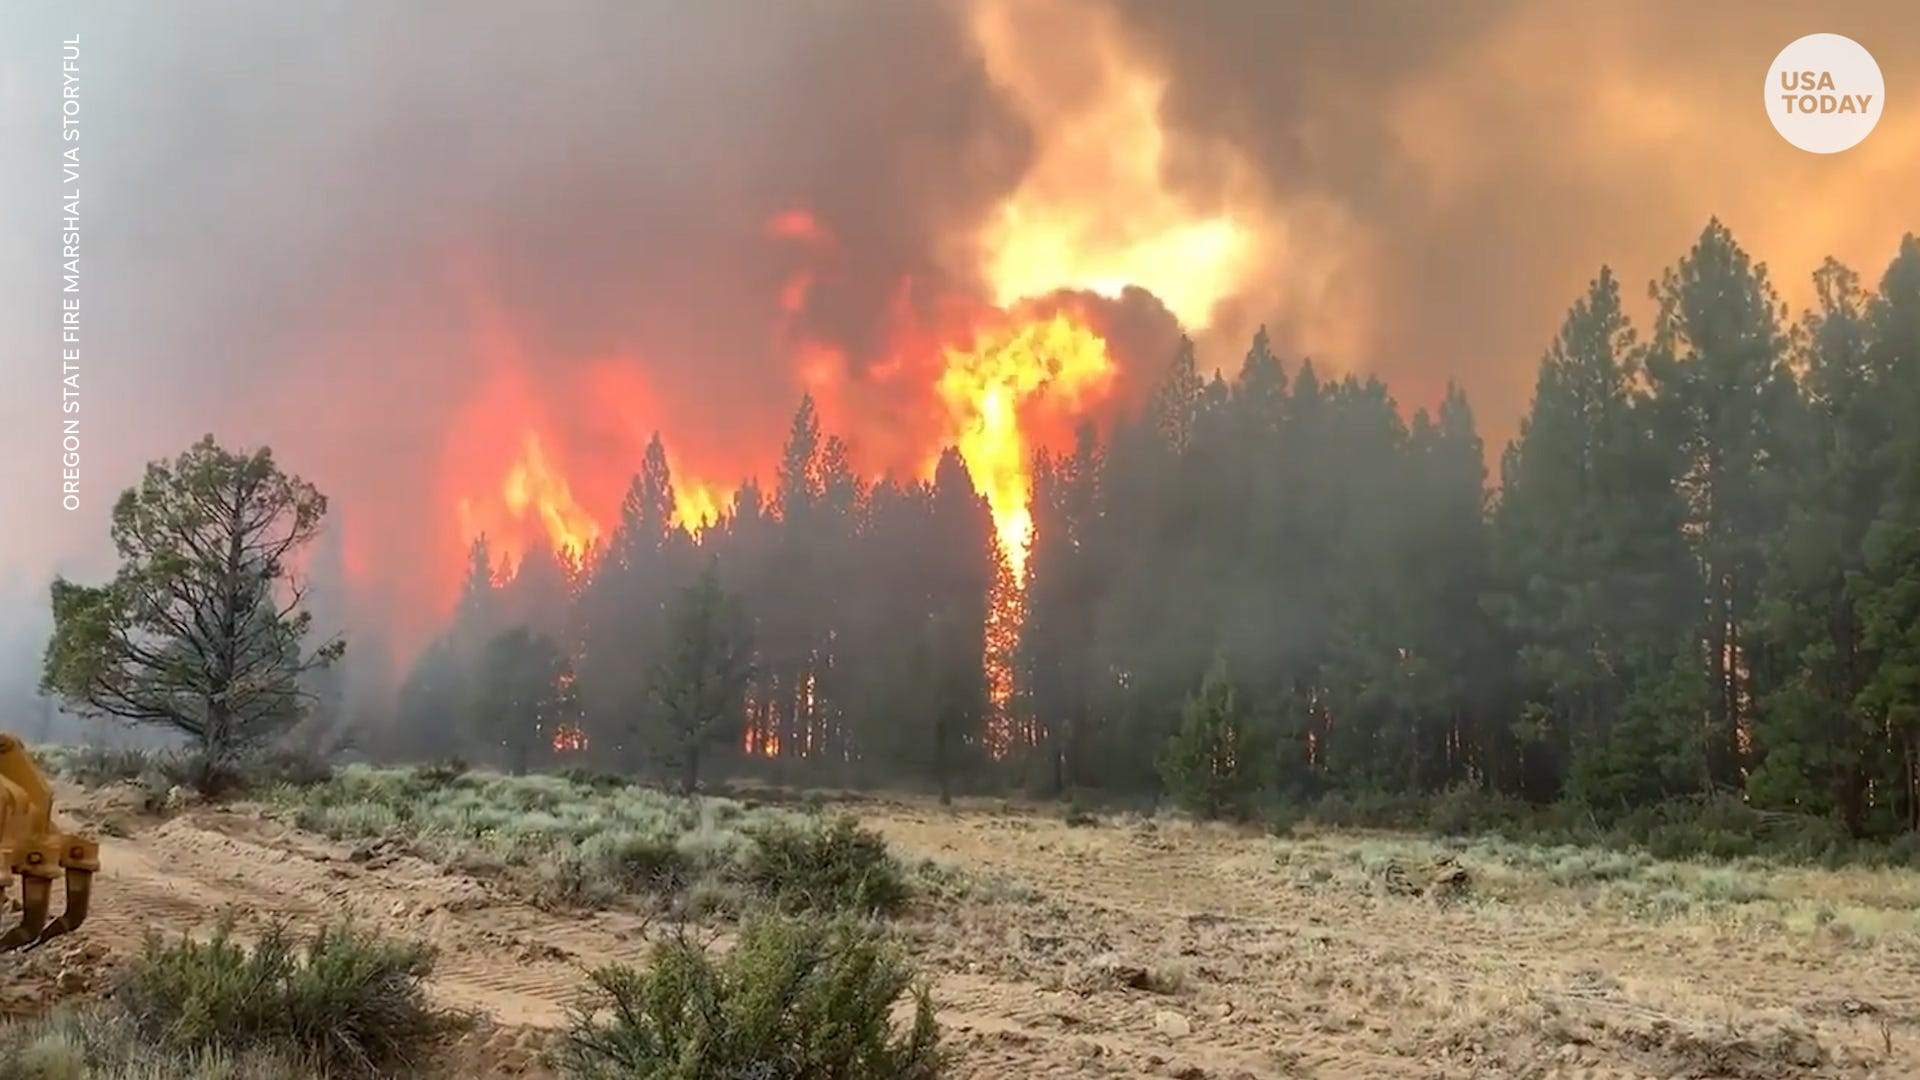 Wildfires burn more than 300,000 acres across six states